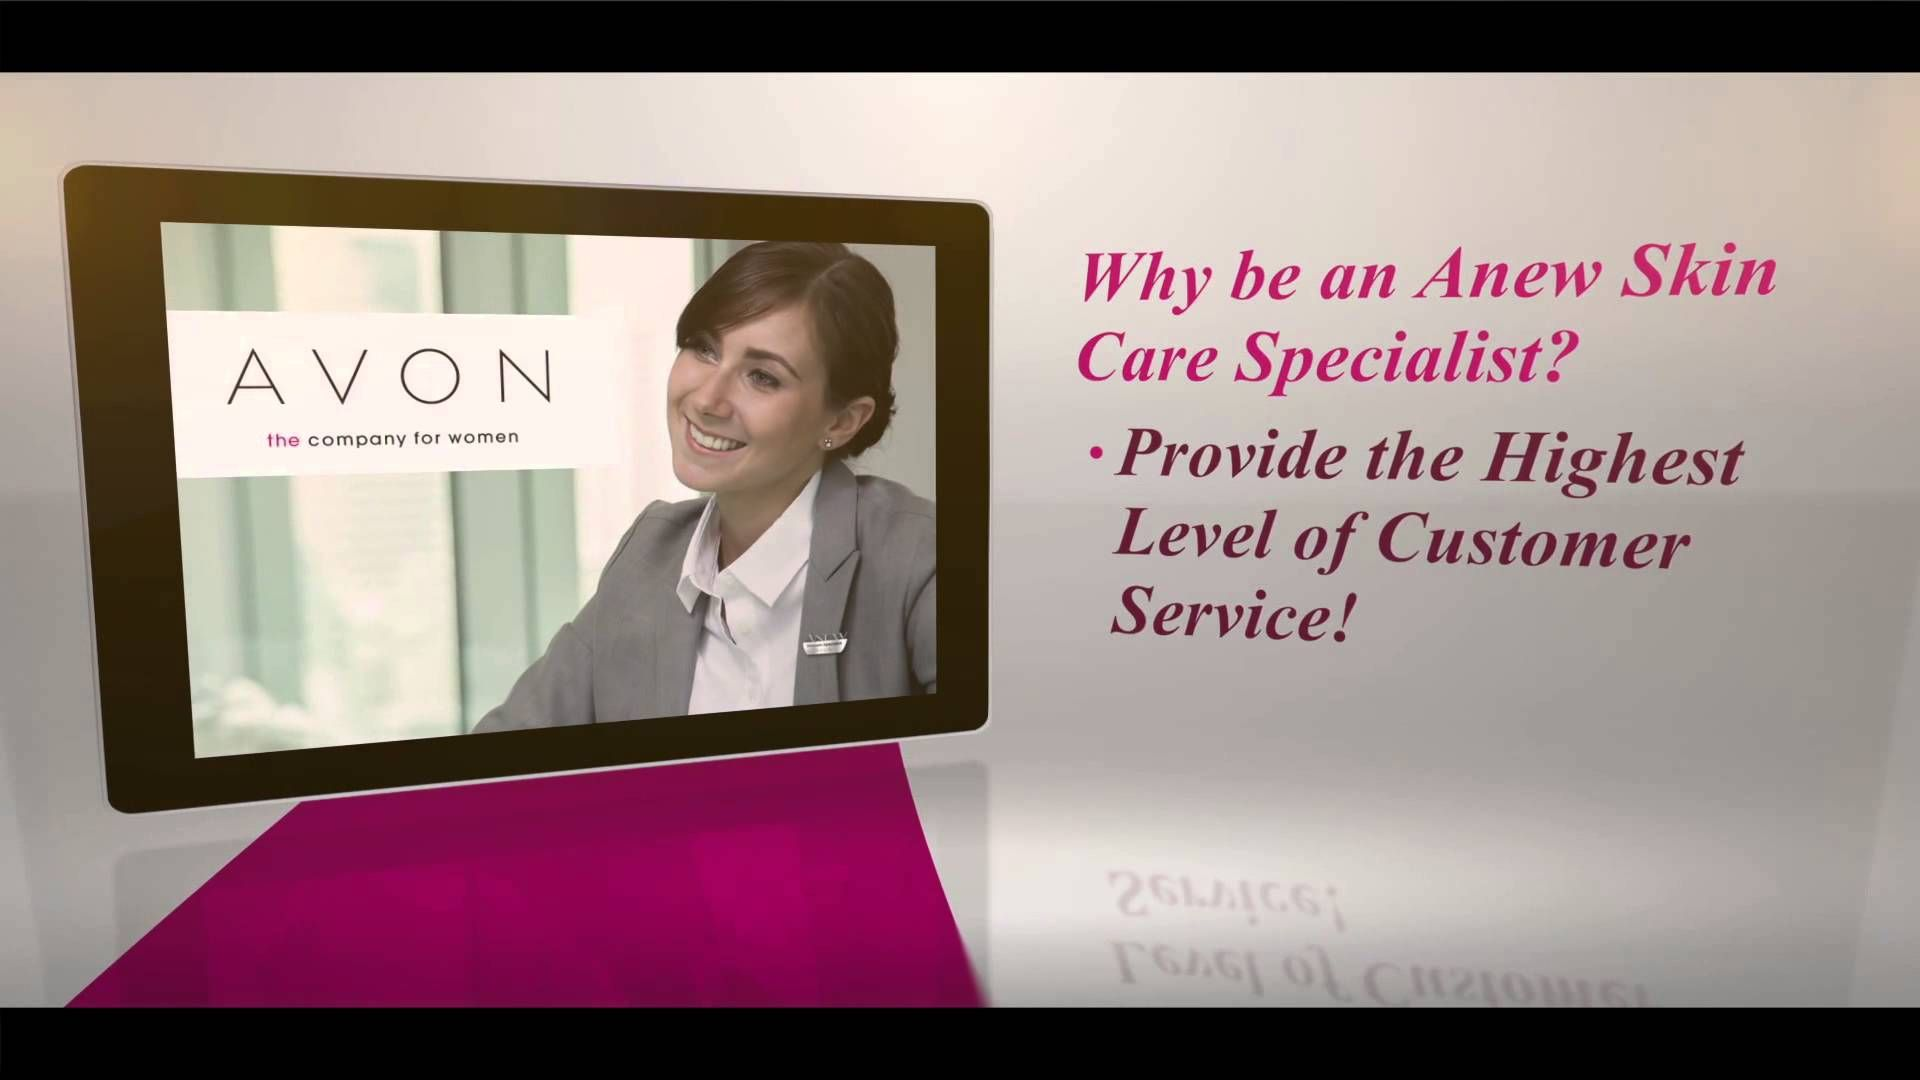 Avon Anew Skincare Specialist Training Join Avon Today And Learn How You Can Become A Skin Care Specialist At Www Youravon Skin Care Specialist Avon Anew Avon